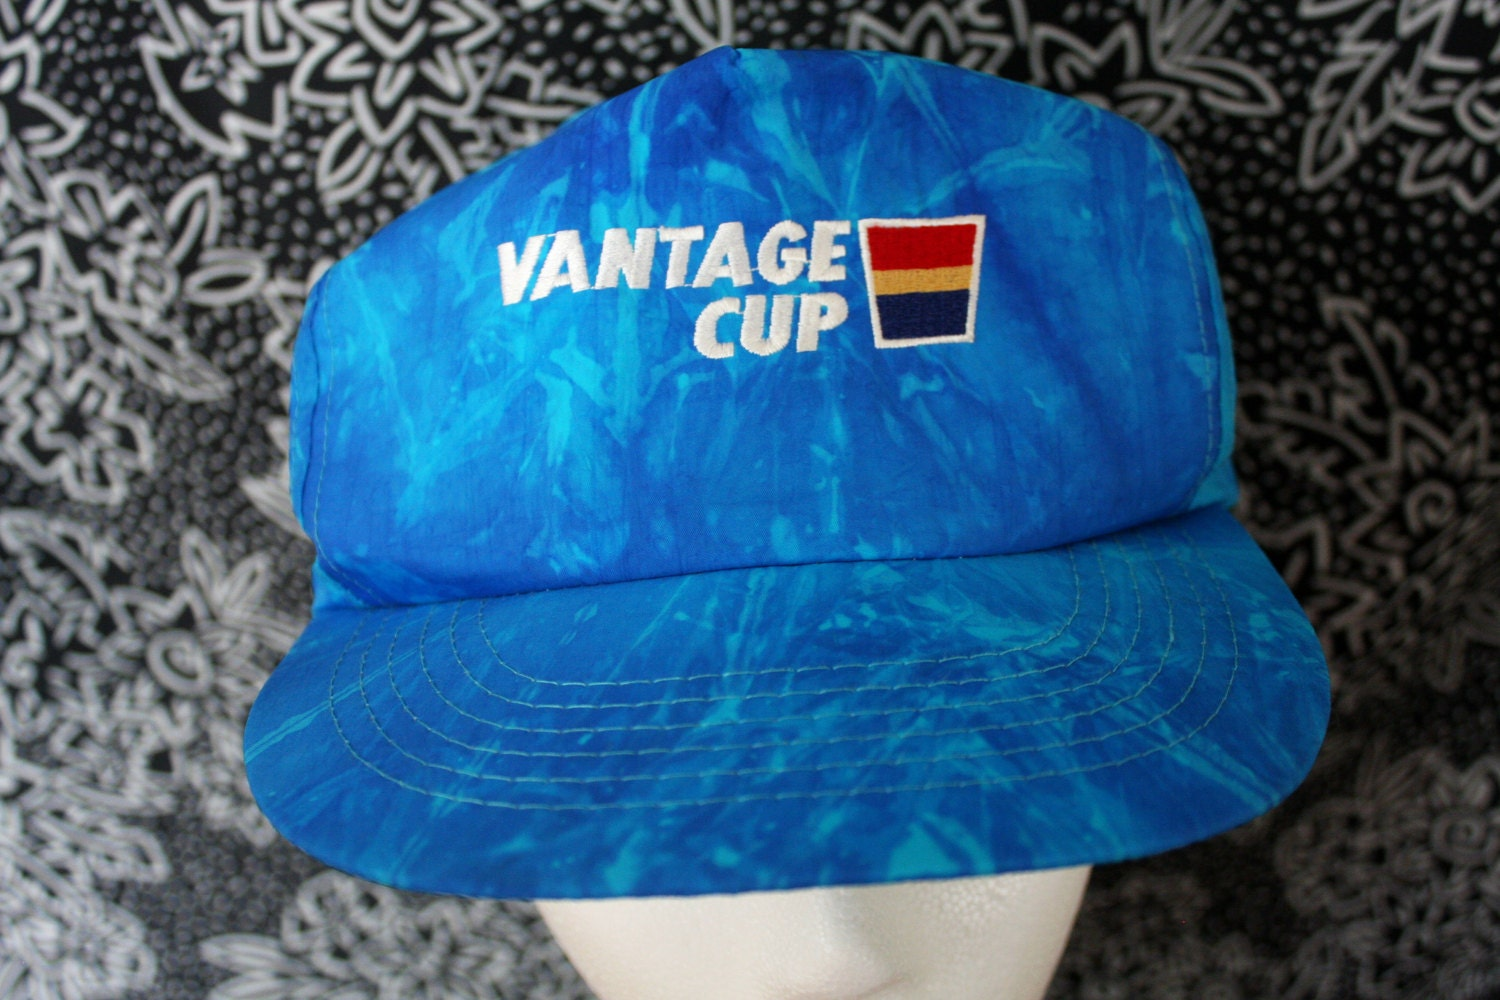 cfa1877e22a Vintage 90s Hipster Nylon Hat. Vantage Cup Logo Blue Swirly Tie Dye  Baseball Snapback Hat. Super Cool 90s Hipster Dope Fresh Style